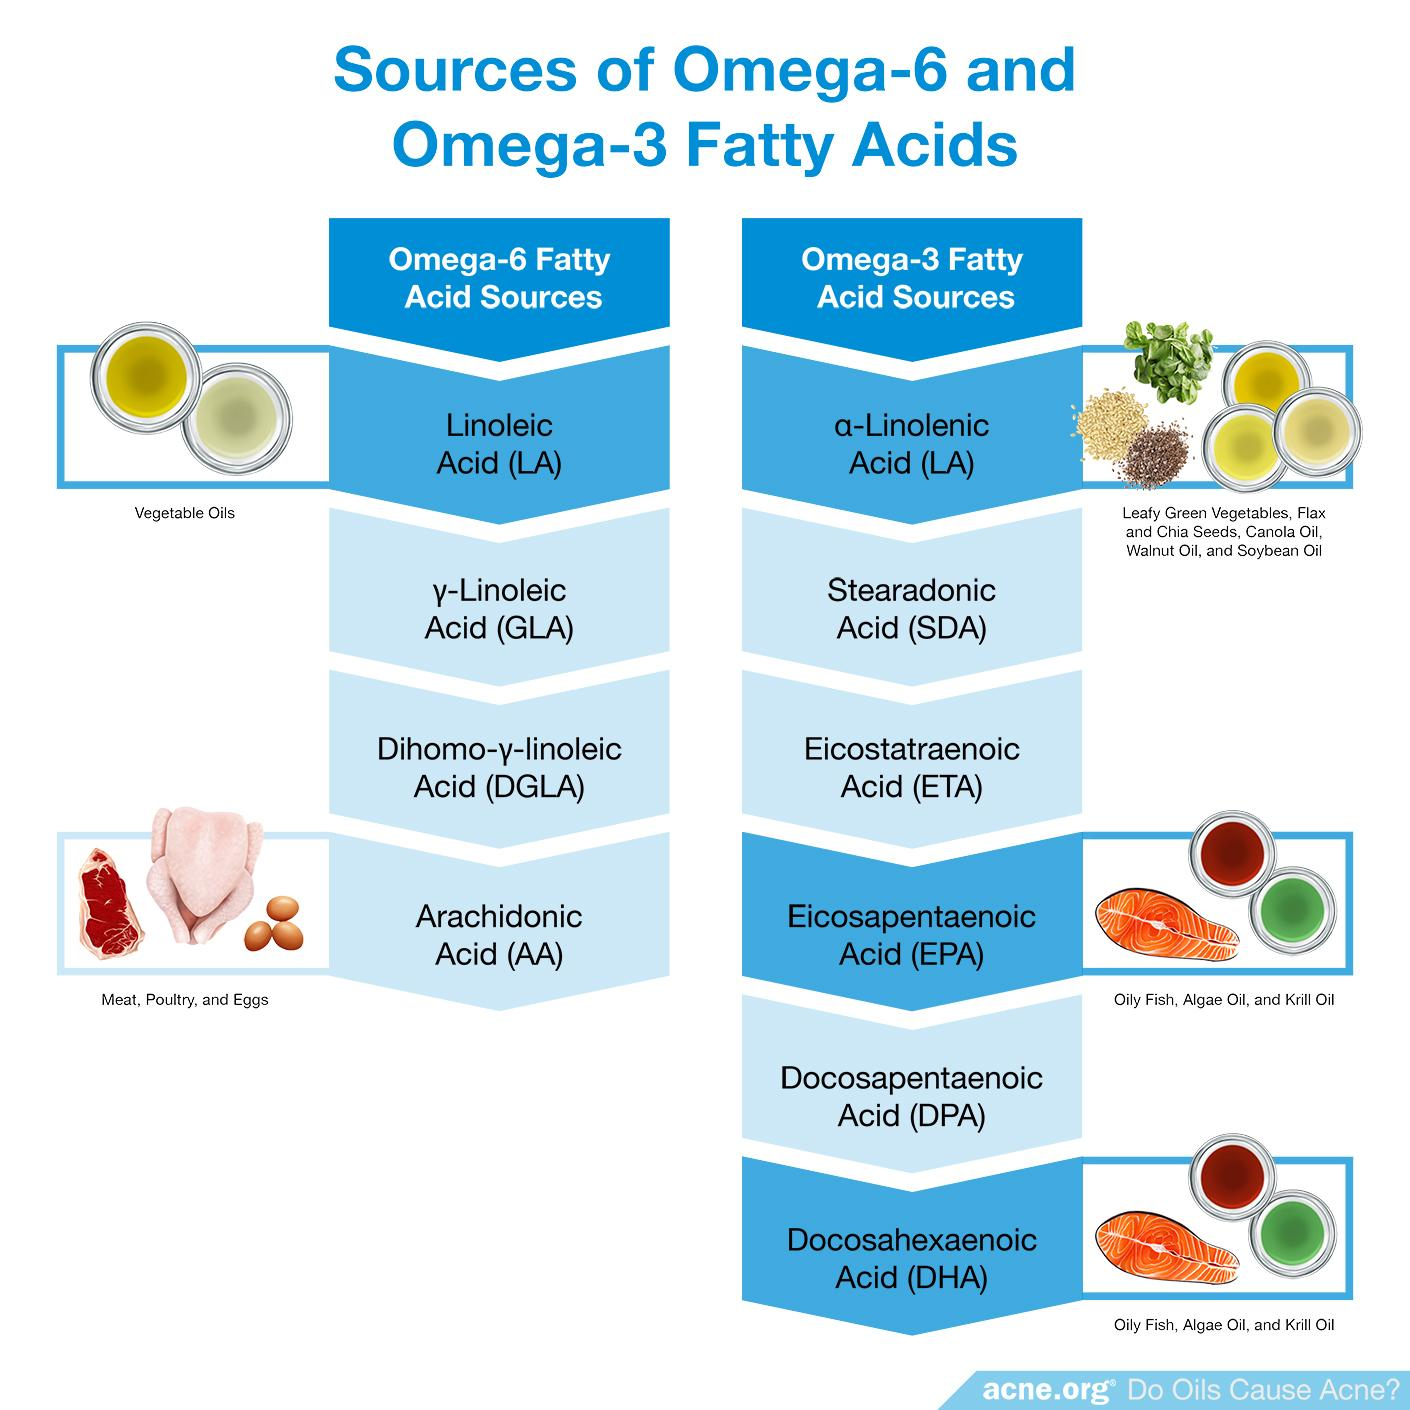 Sources of Omega-3 and Omega-6 Fatty Acids